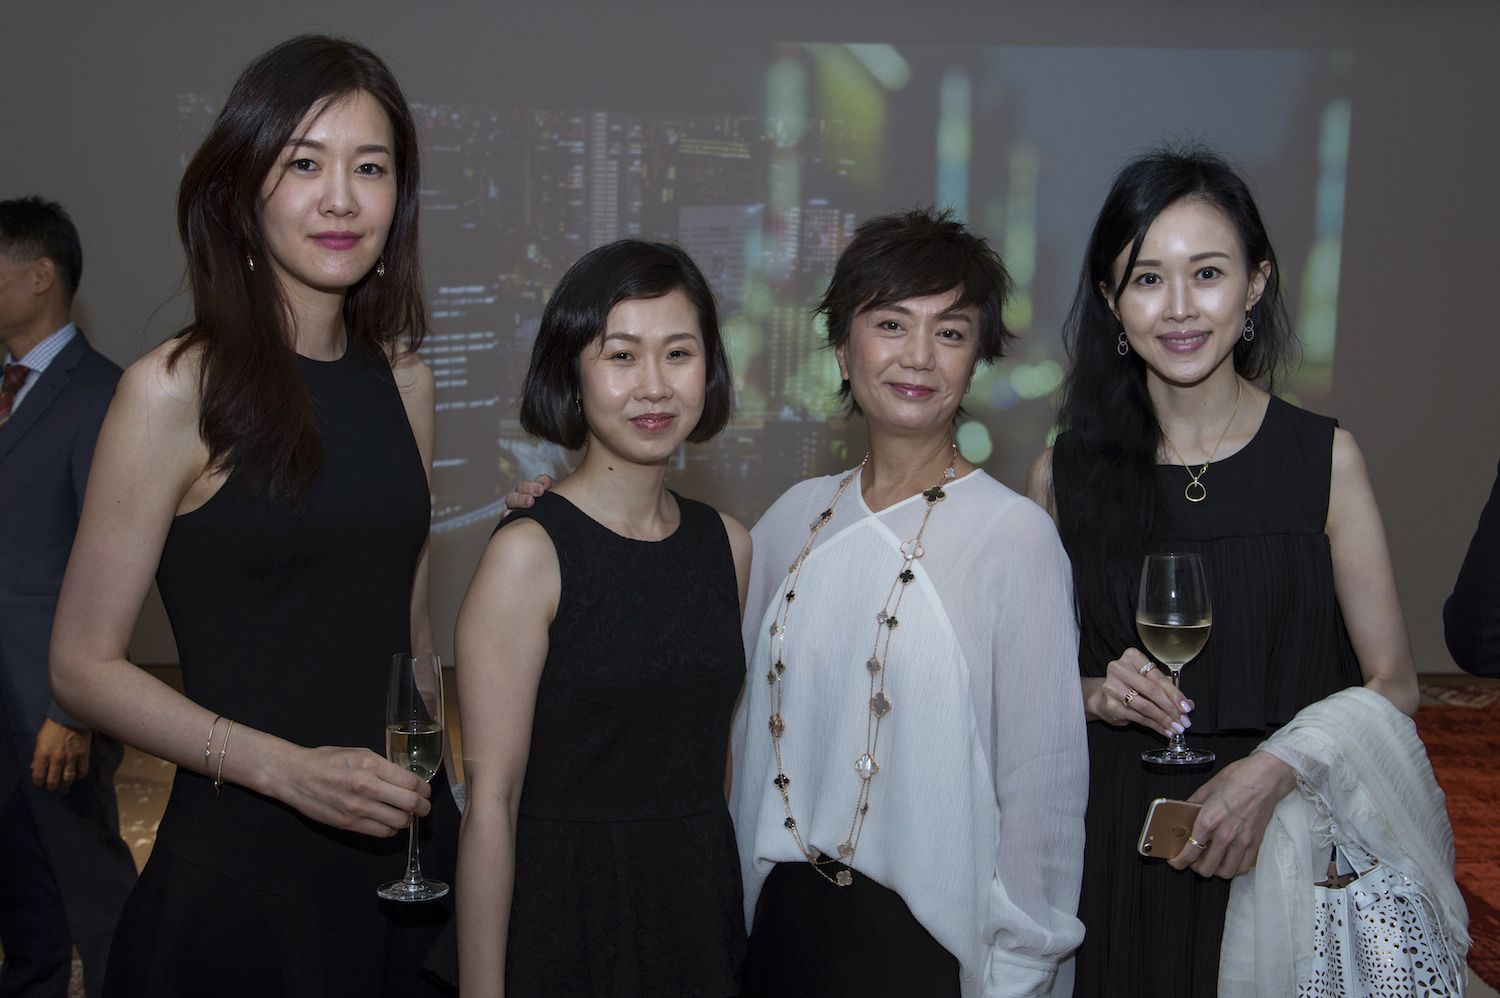 Jane Yoo, Bonnie Chan-Woo, Doreen Tong and Jacqueline Chow